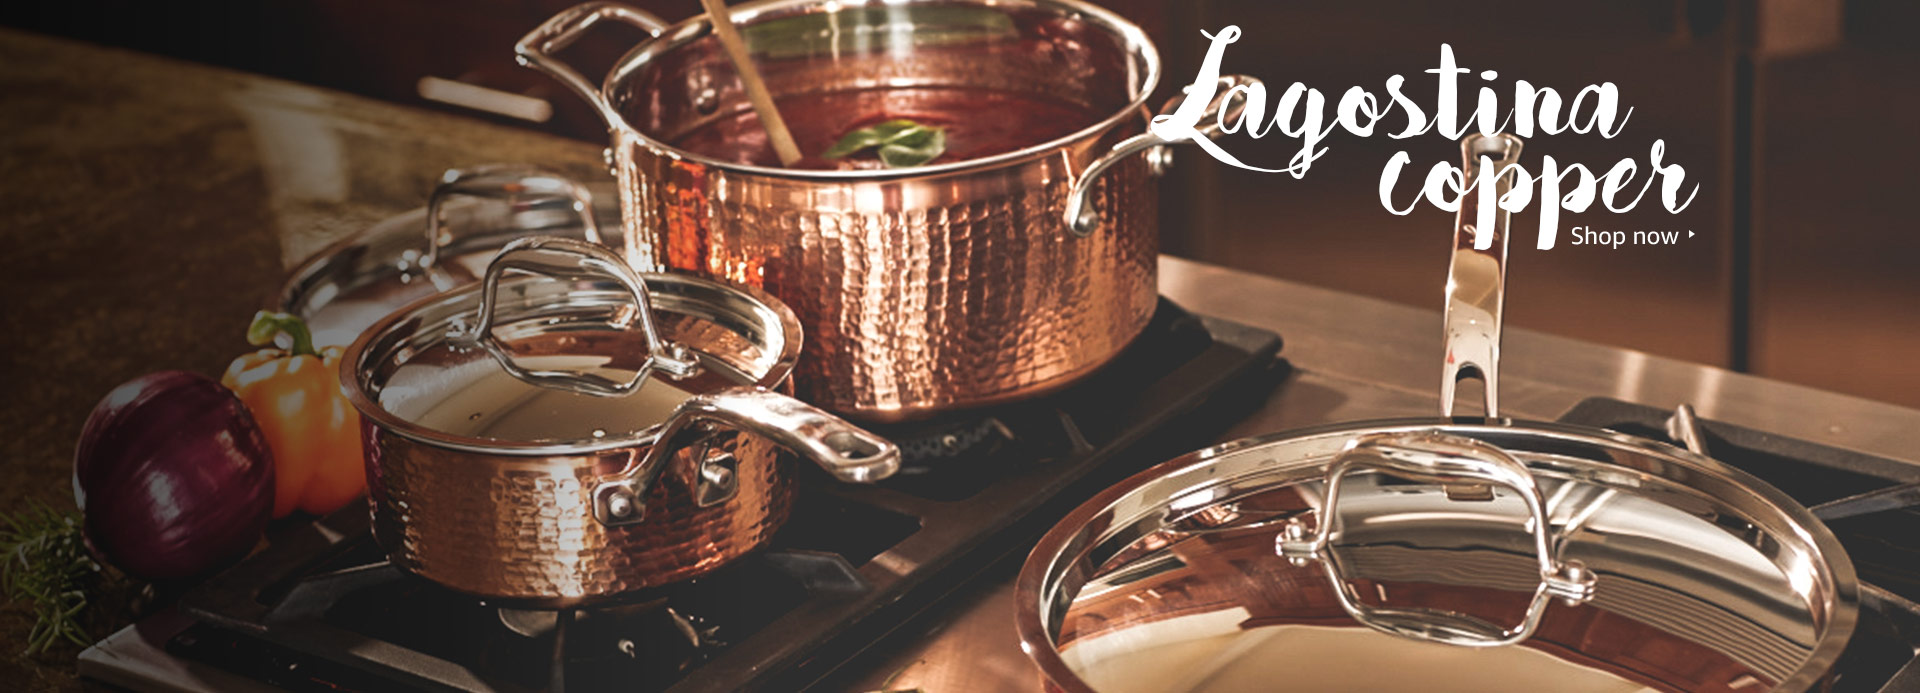 Lagostina Copper, Cookware